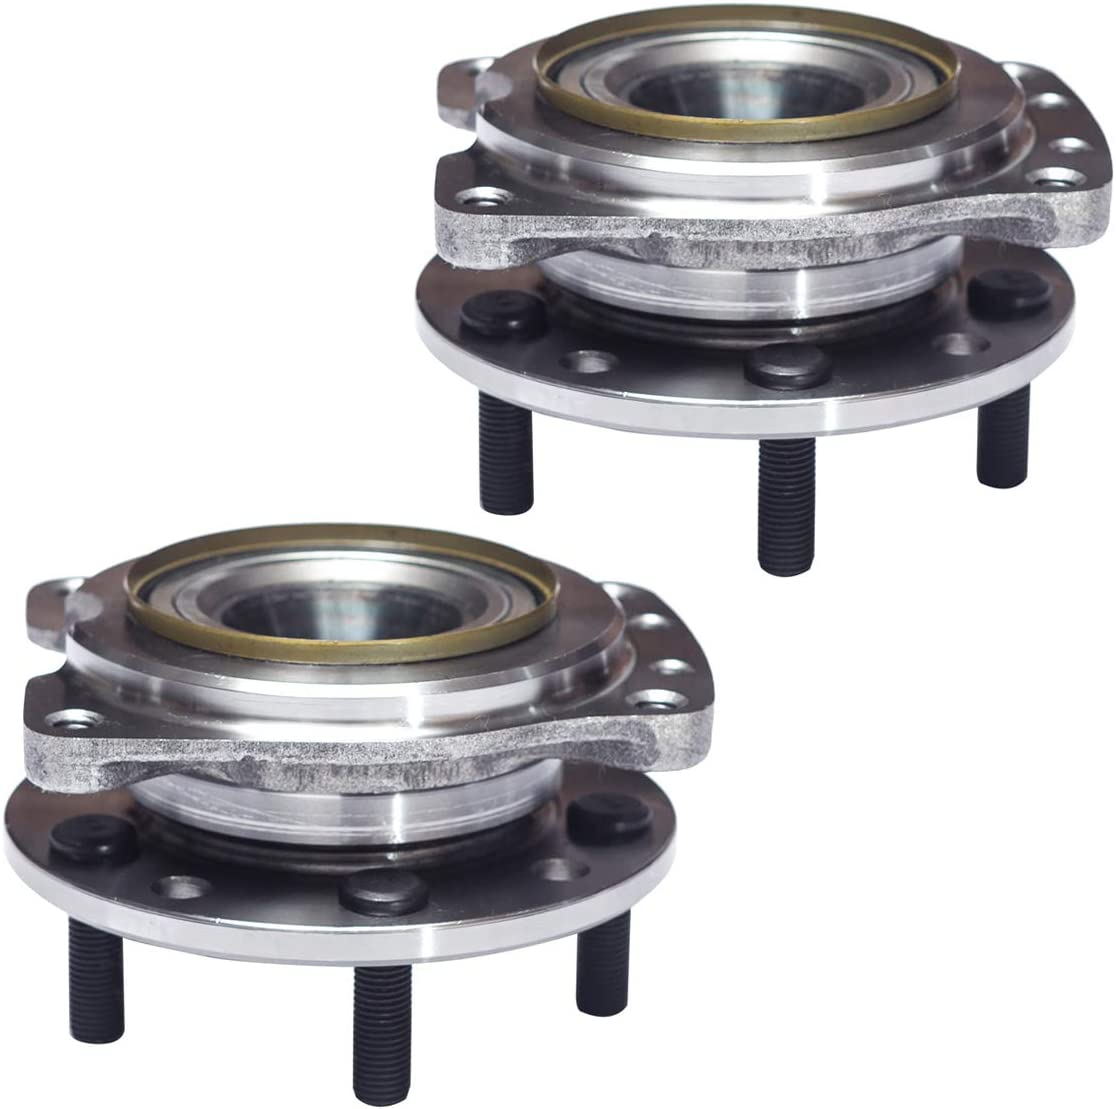 88-96 Pontiac Grand Prix AUQDD 513044 x2 FWD Models 5 Lug Hub Pair Front Wheel Hub and Bearing Assembly Compatible With Buick Regal Chevrolet Lumina 95-99 Monte Carlo 88-97 Olds Cutlass Supreme